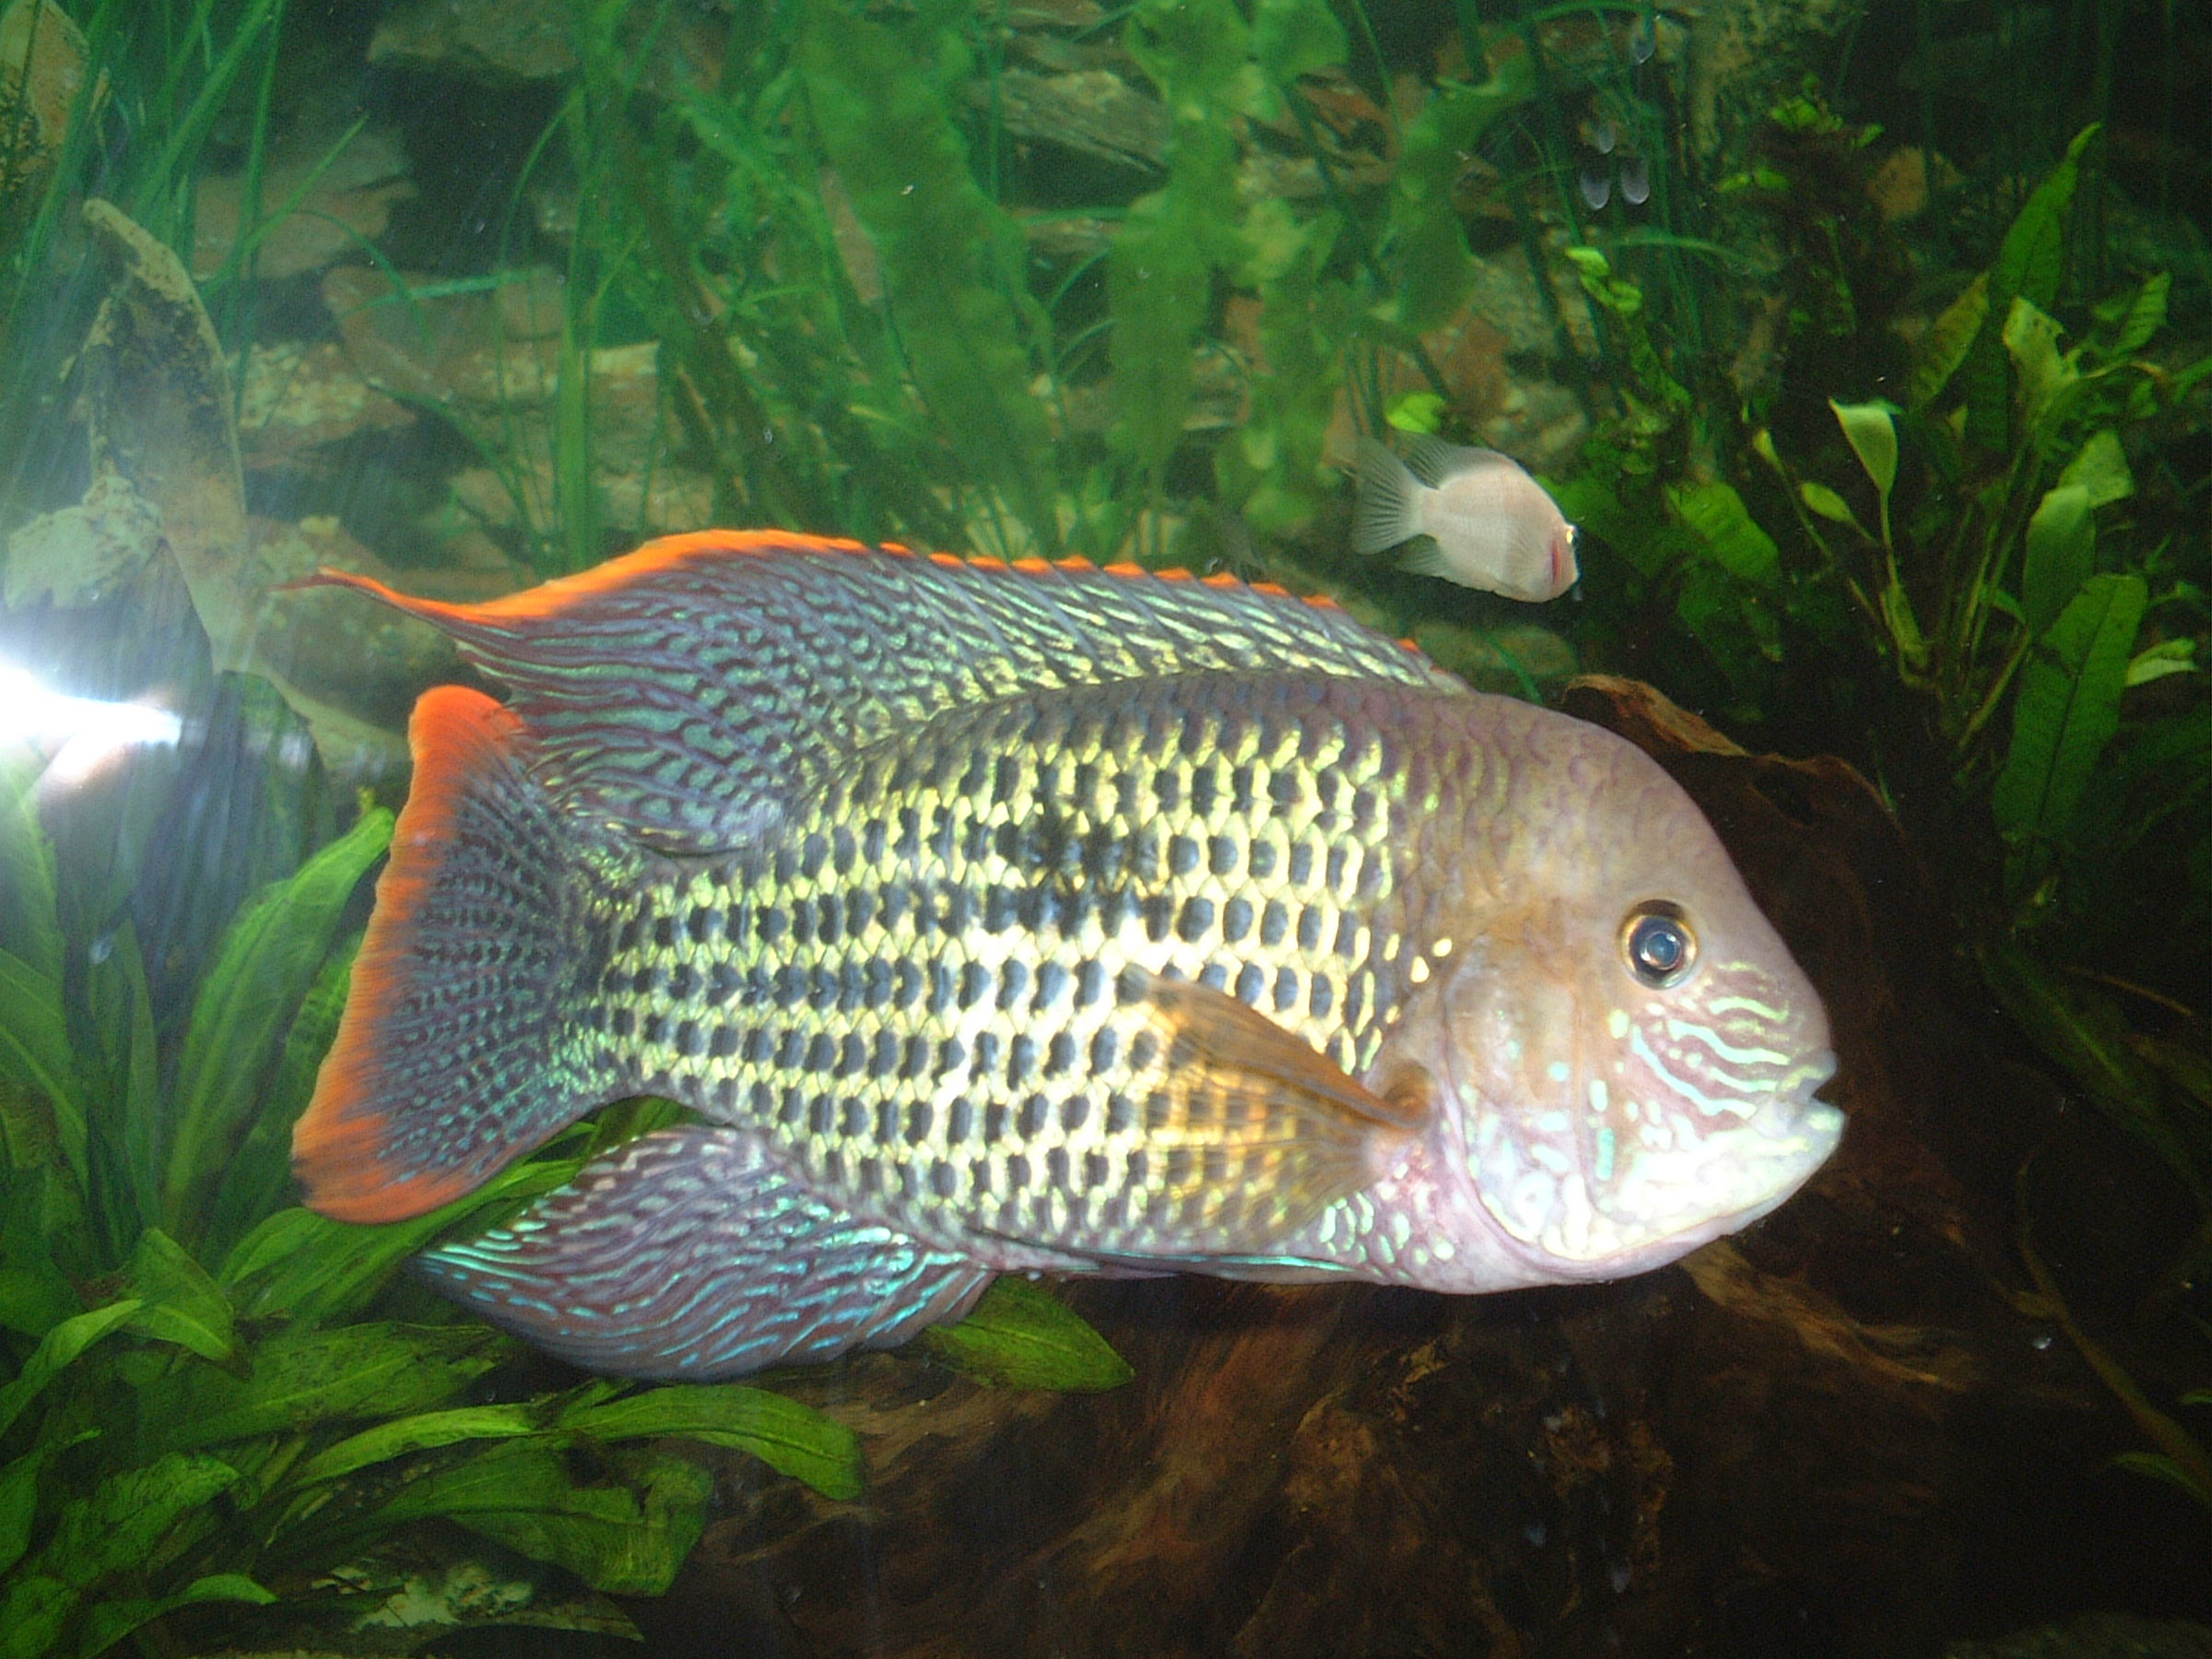 cichlids.com: Male green terror